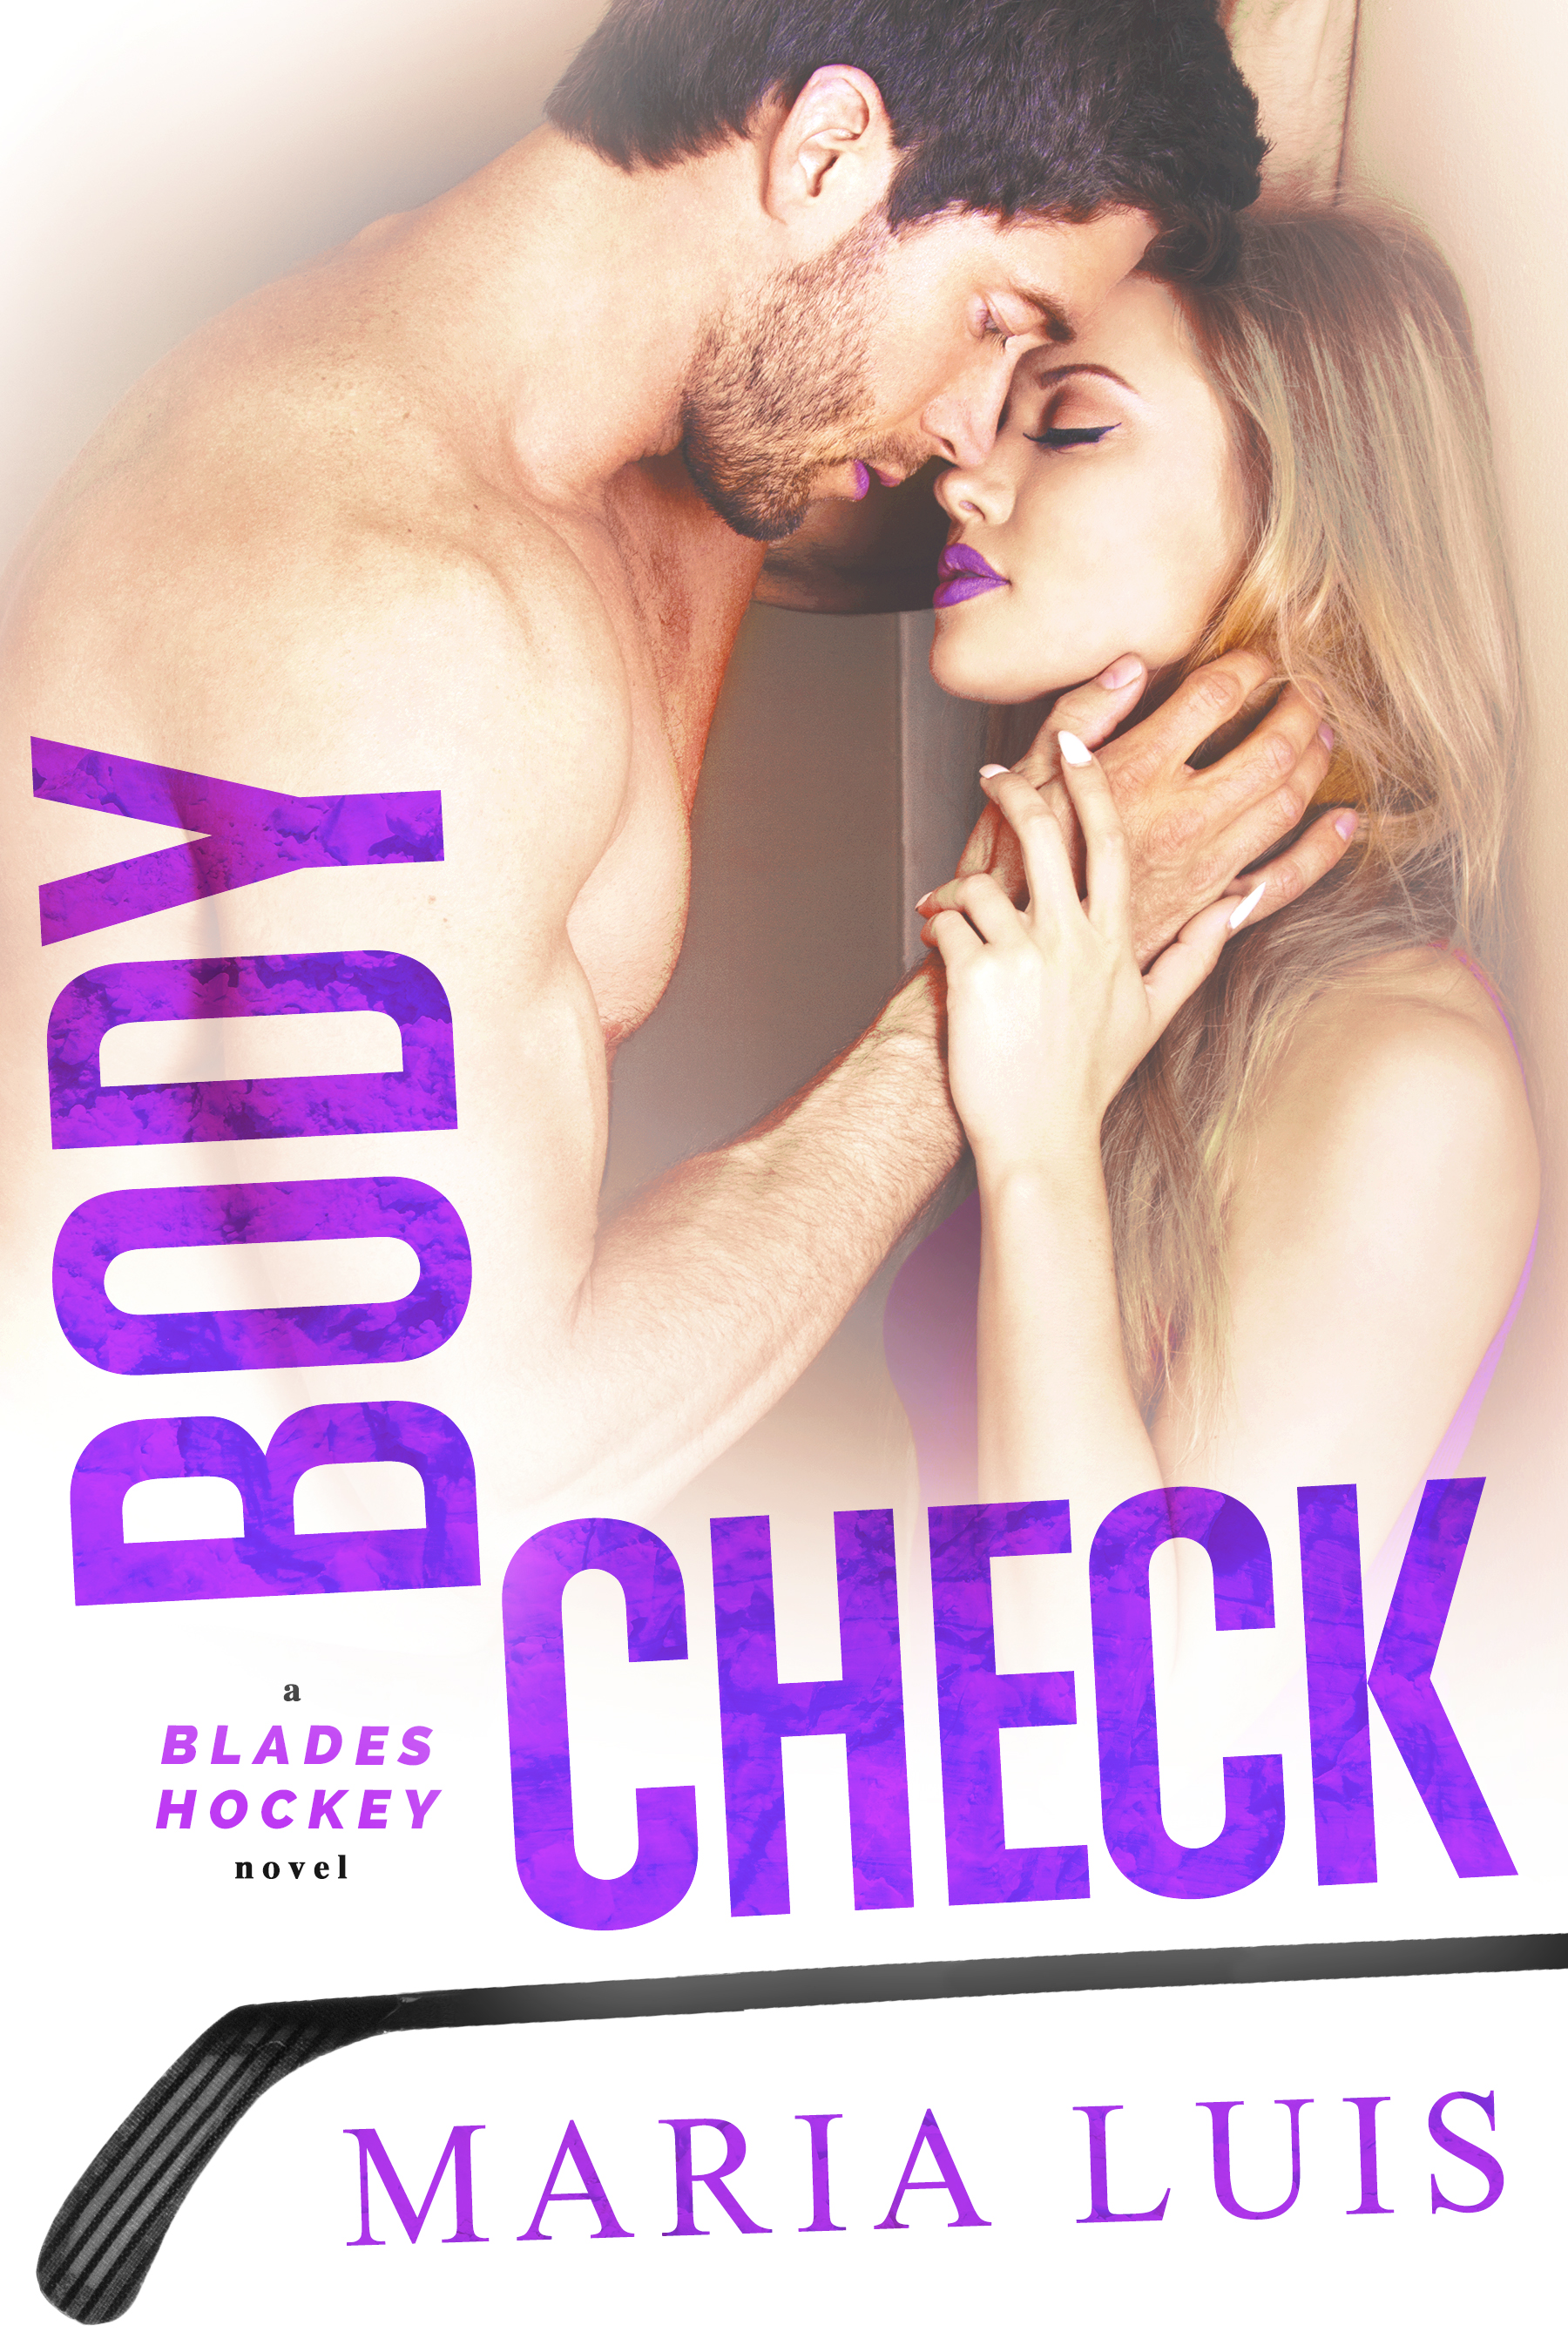 BodyCheck_Ebook.v2.jpg